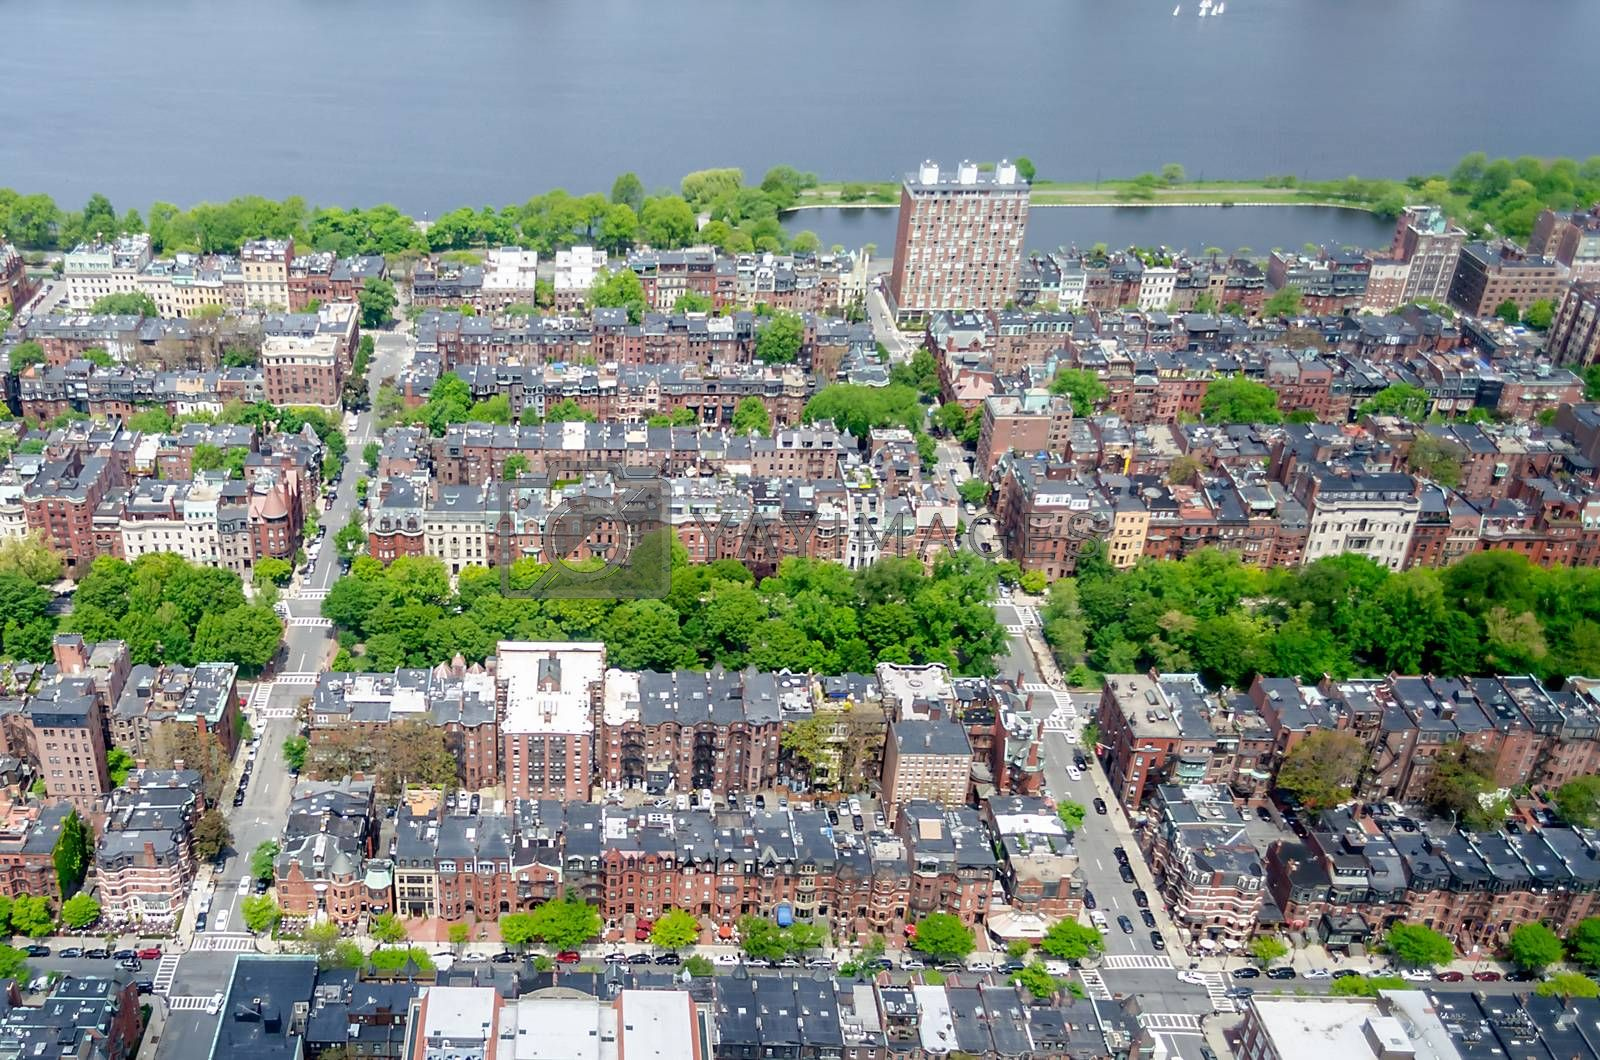 Aerial view of the Back Bay district, Boston, USA by Marco Rubino